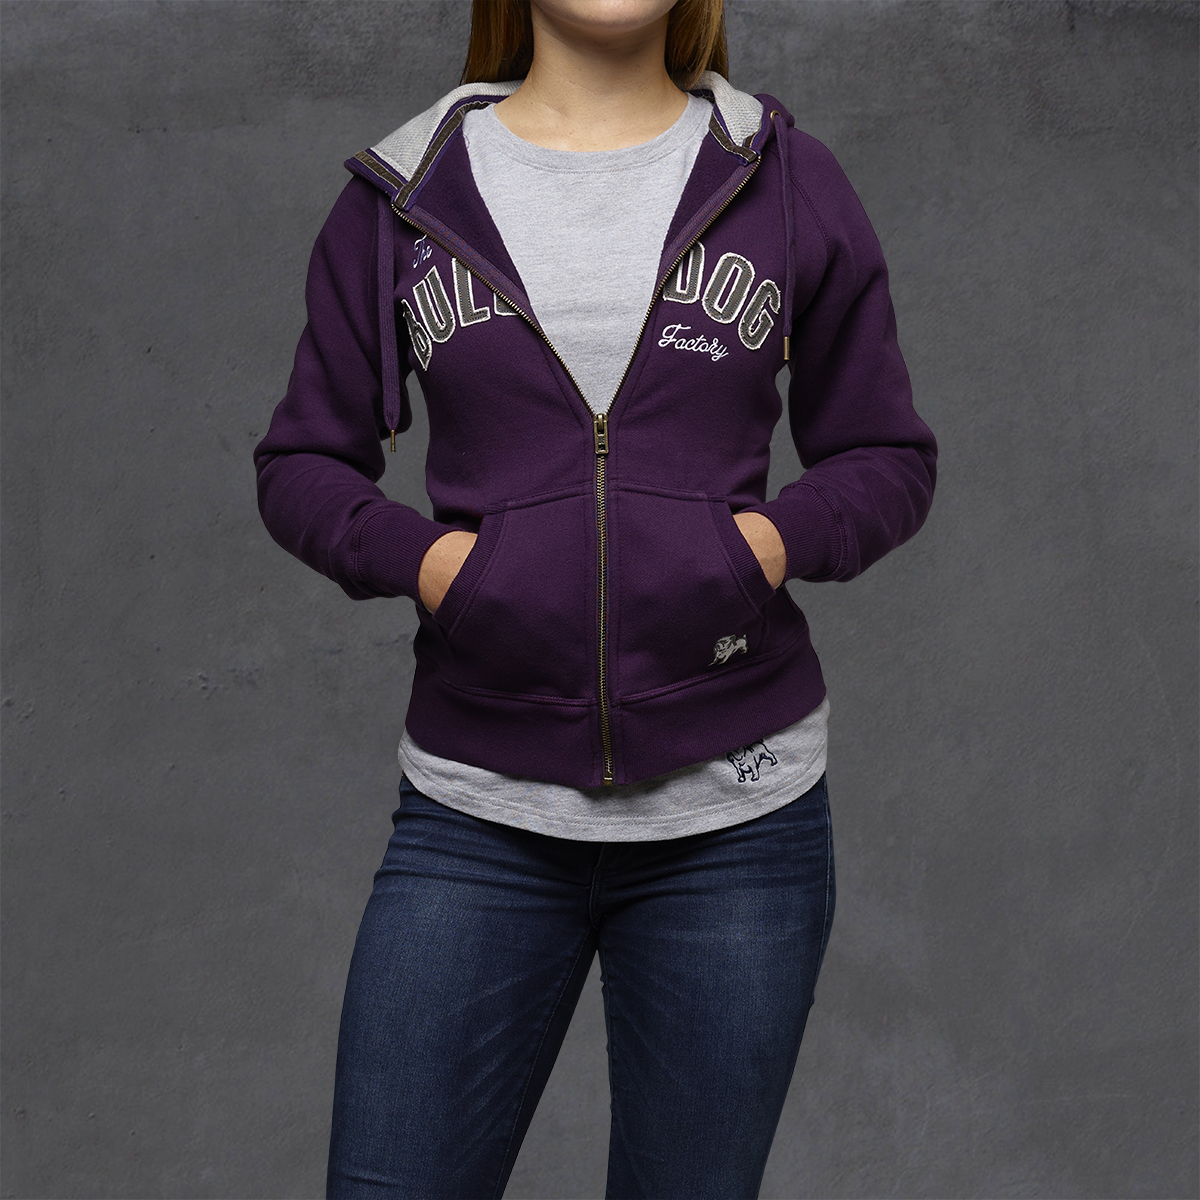 Girls Heritage Hoodies - Crown Jewel